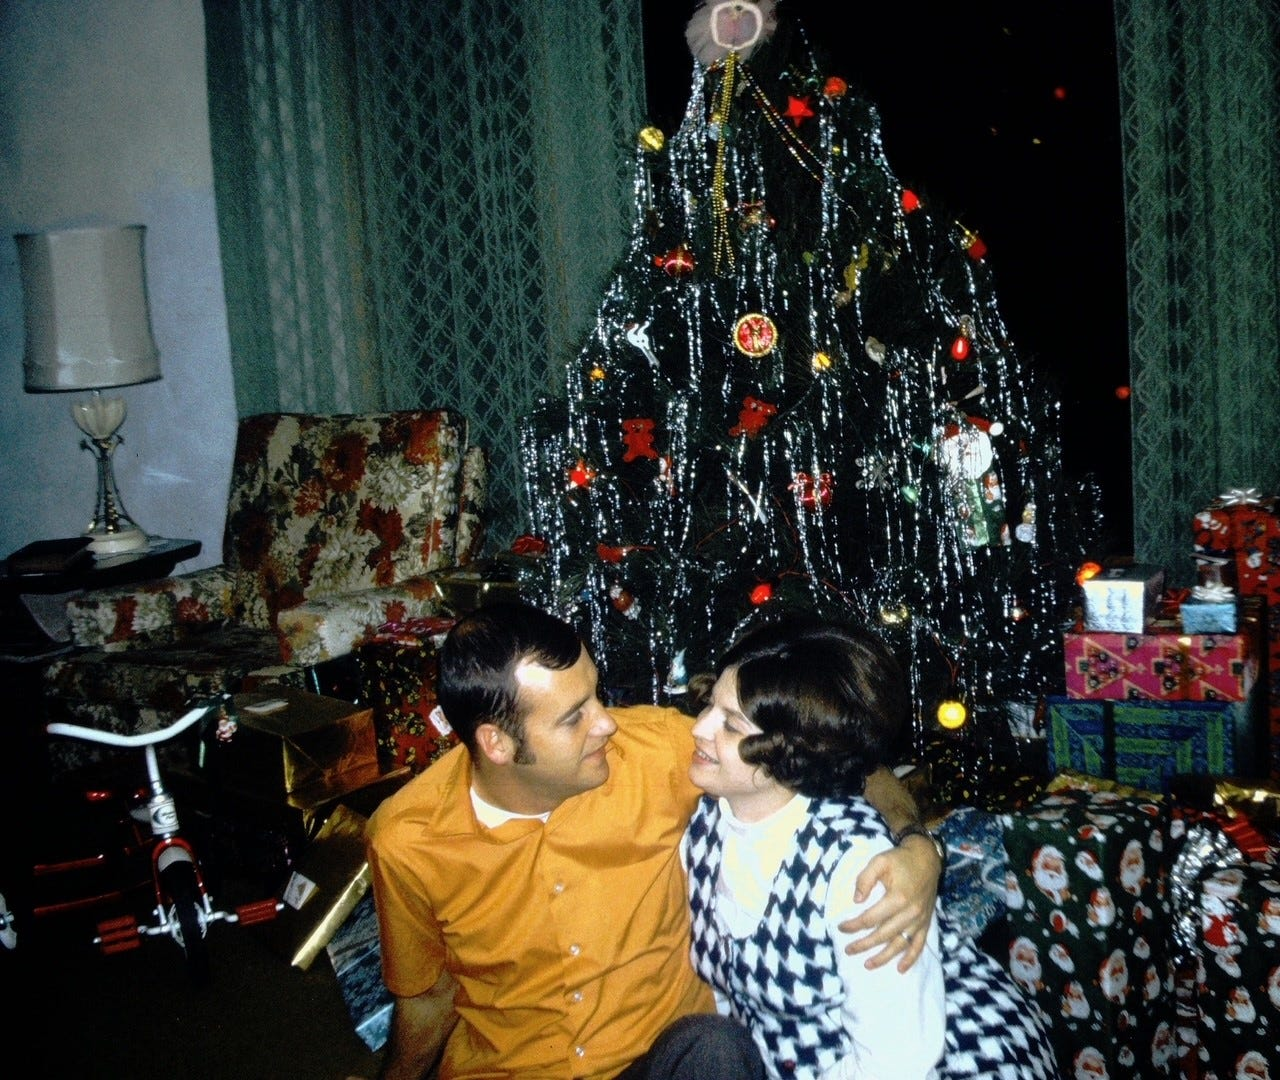 Lou and Patty Luiken at Christmas.